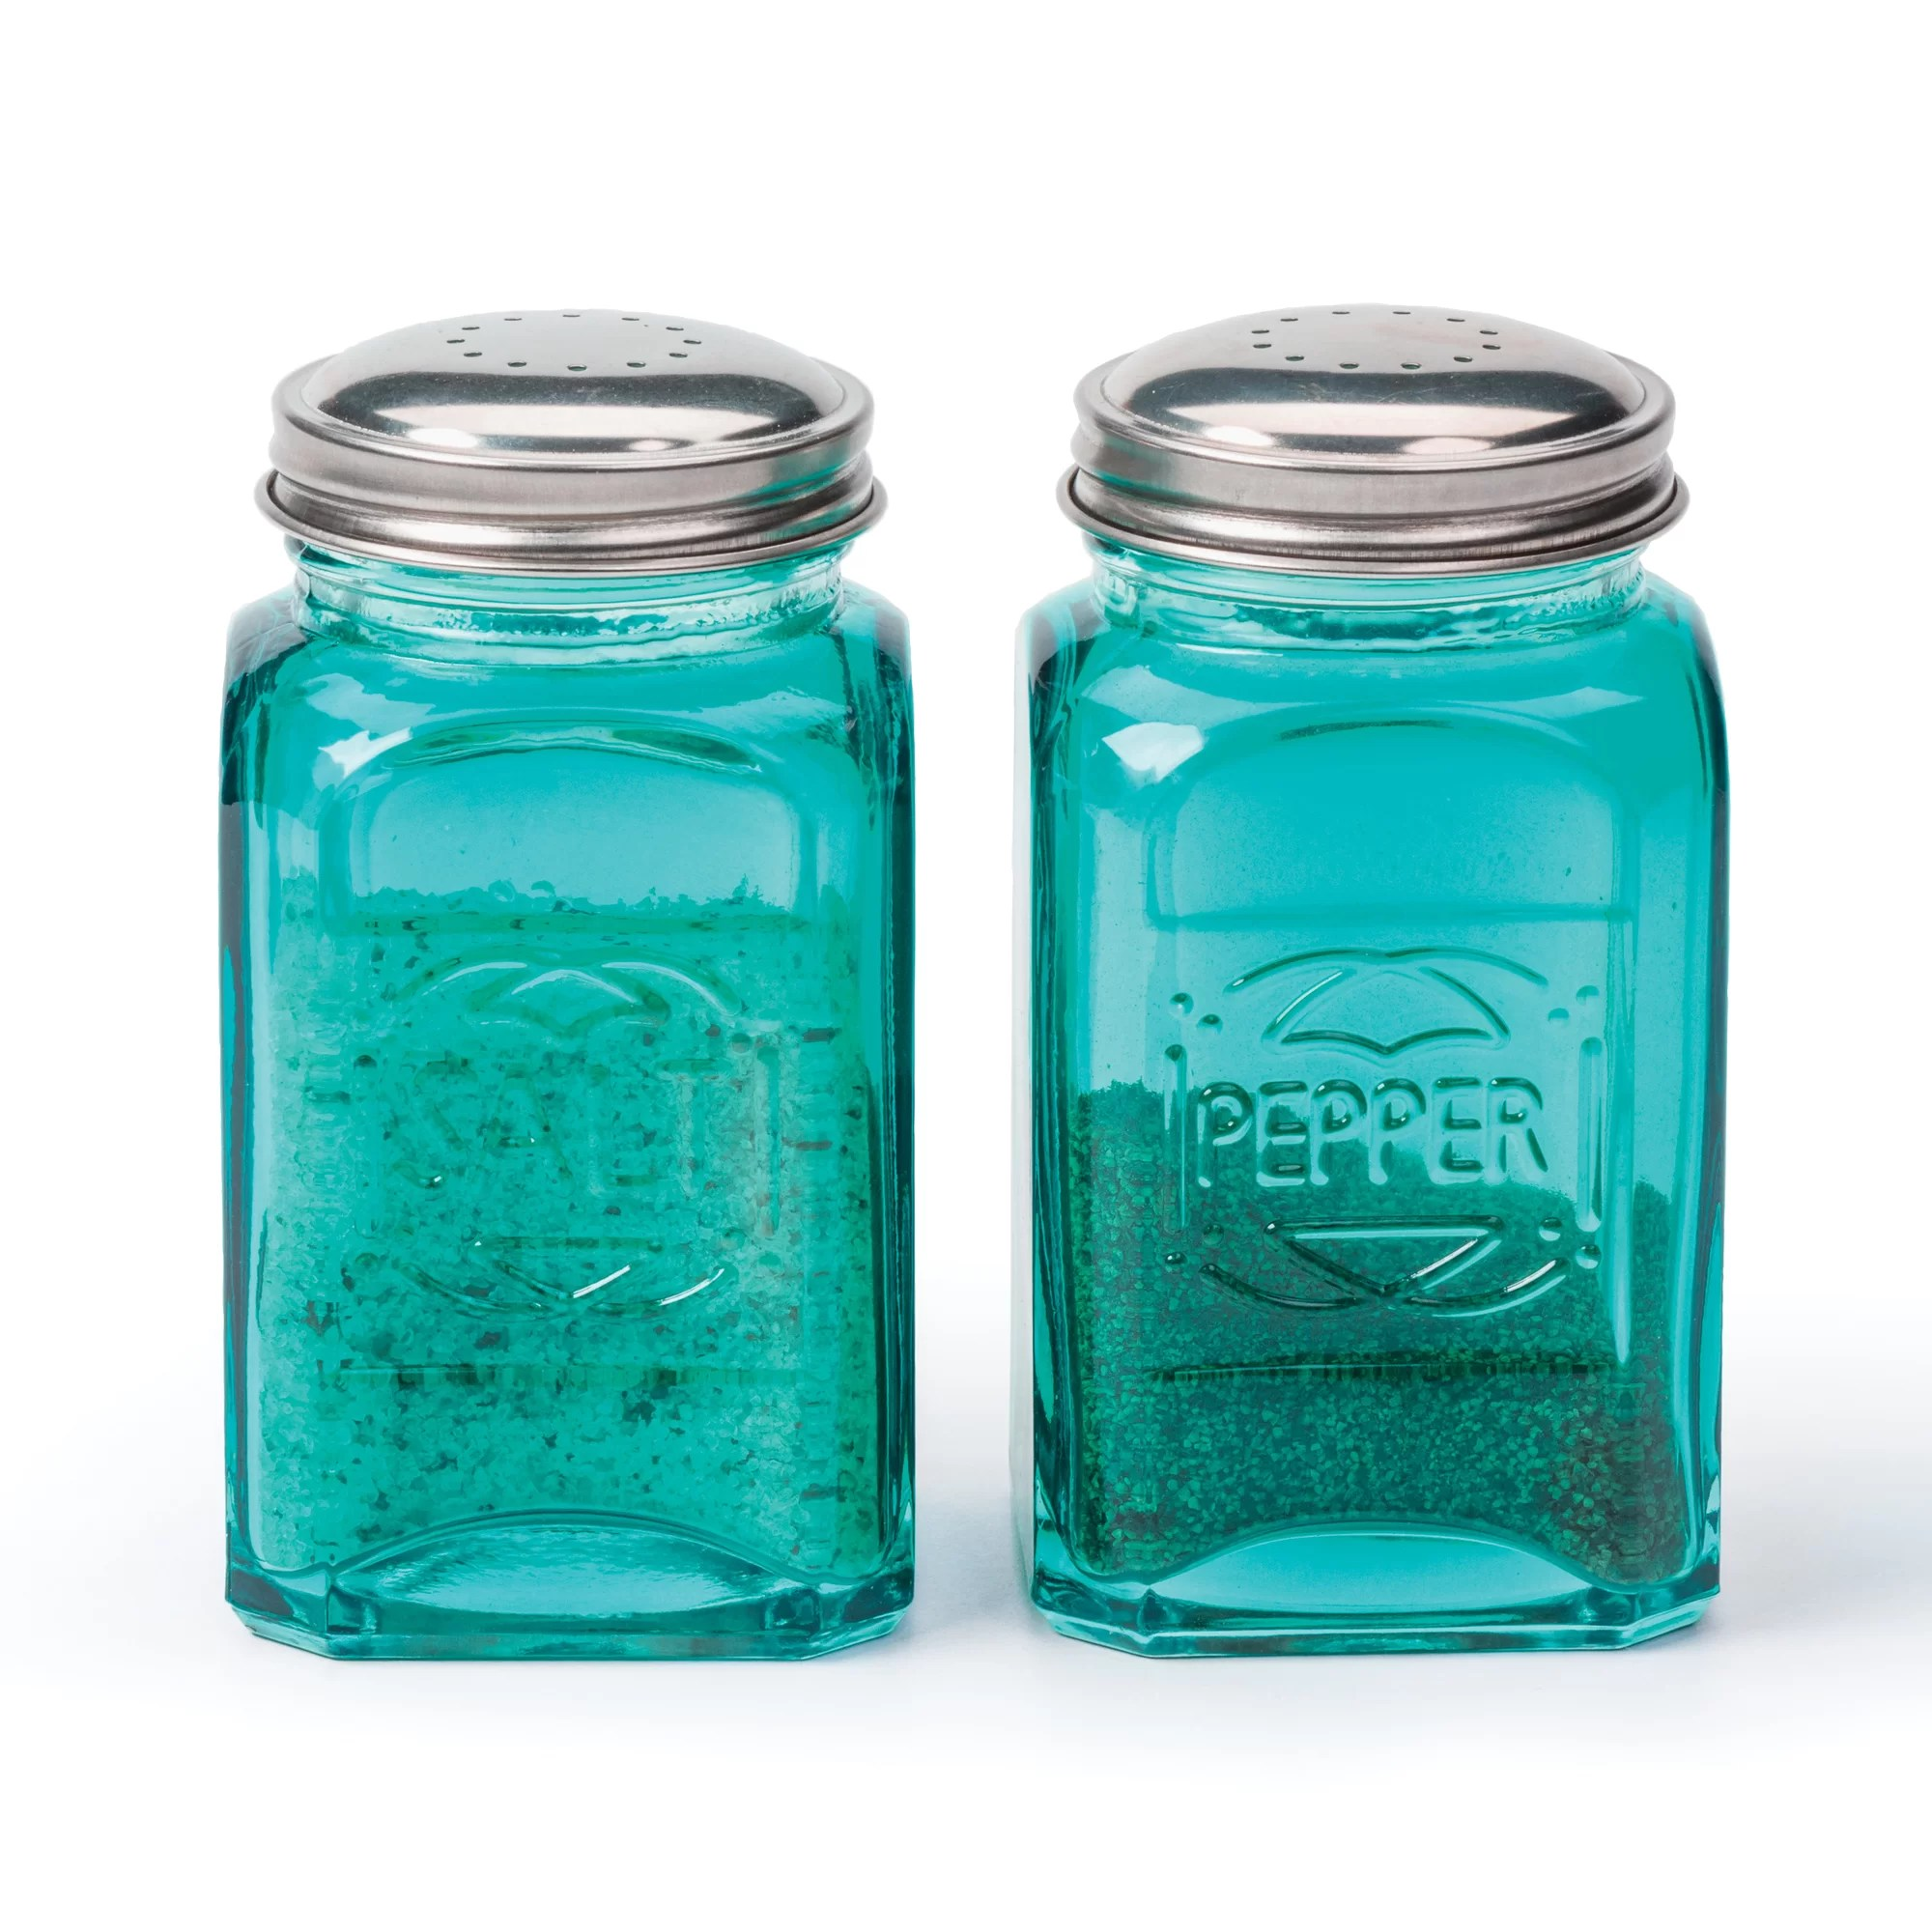 Modern Salt And Pepper Shakers Rsvp Intl Retro Salt And Pepper Shaker Turquoise Set Of 2